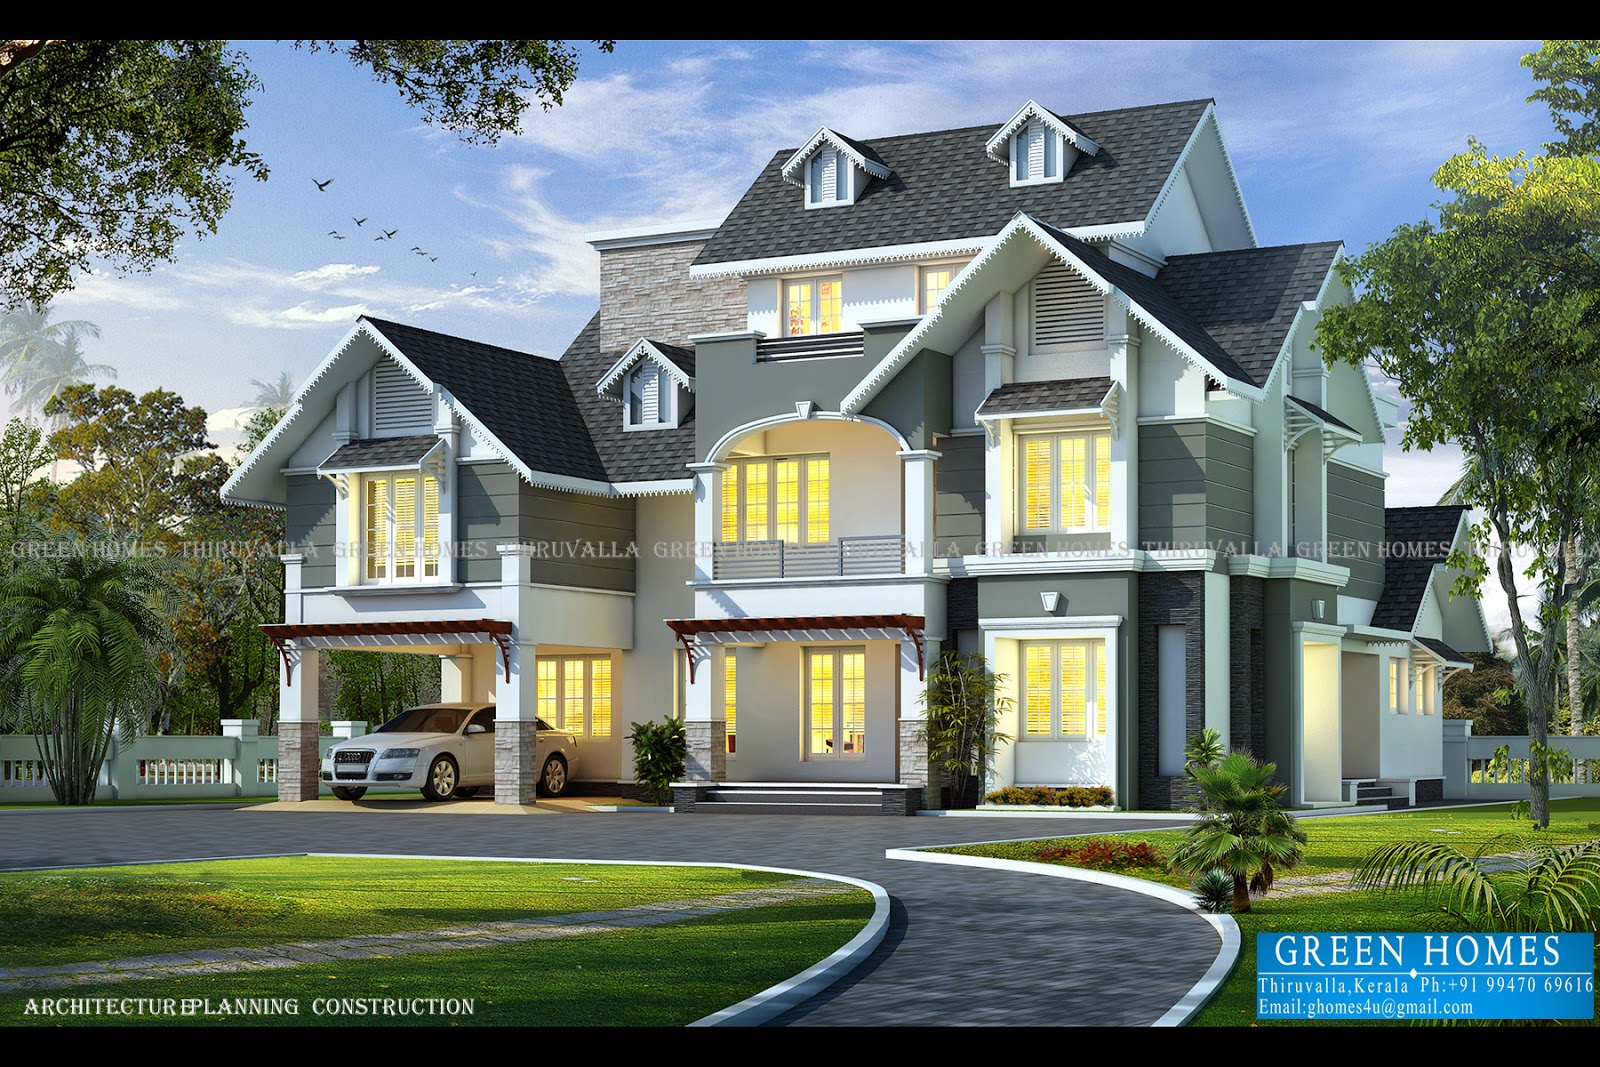 Green homes awesome european style house in 3650 sq feet for Modern green home plans